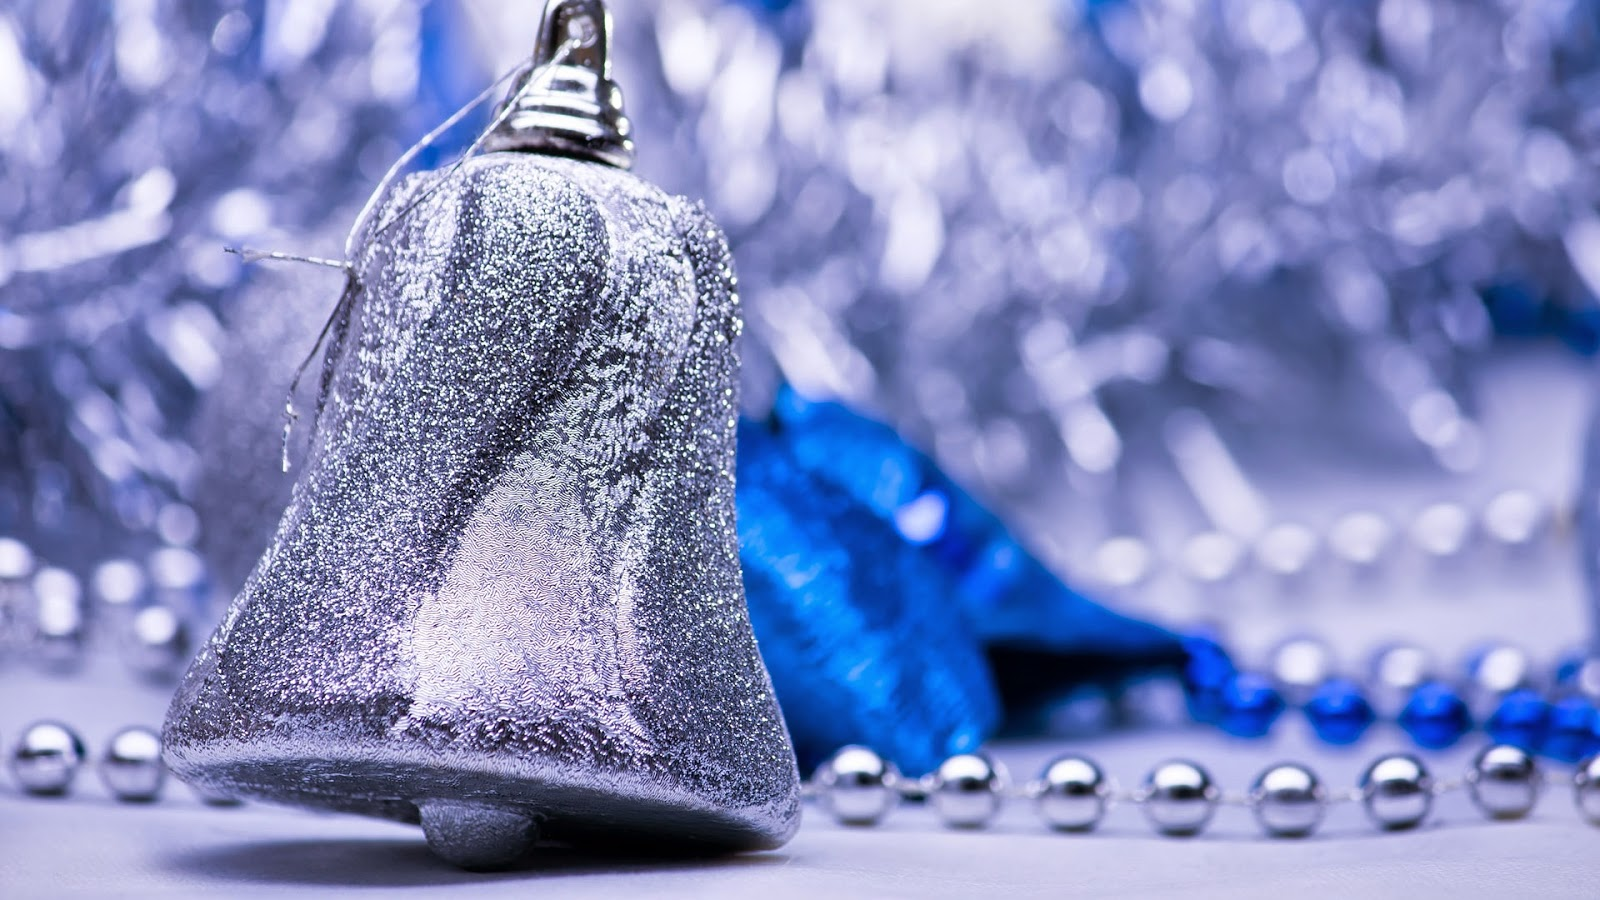 Silver-Christmas-Bell-photography-hd-image-for-freetings-wishes-card-design-template.jpg